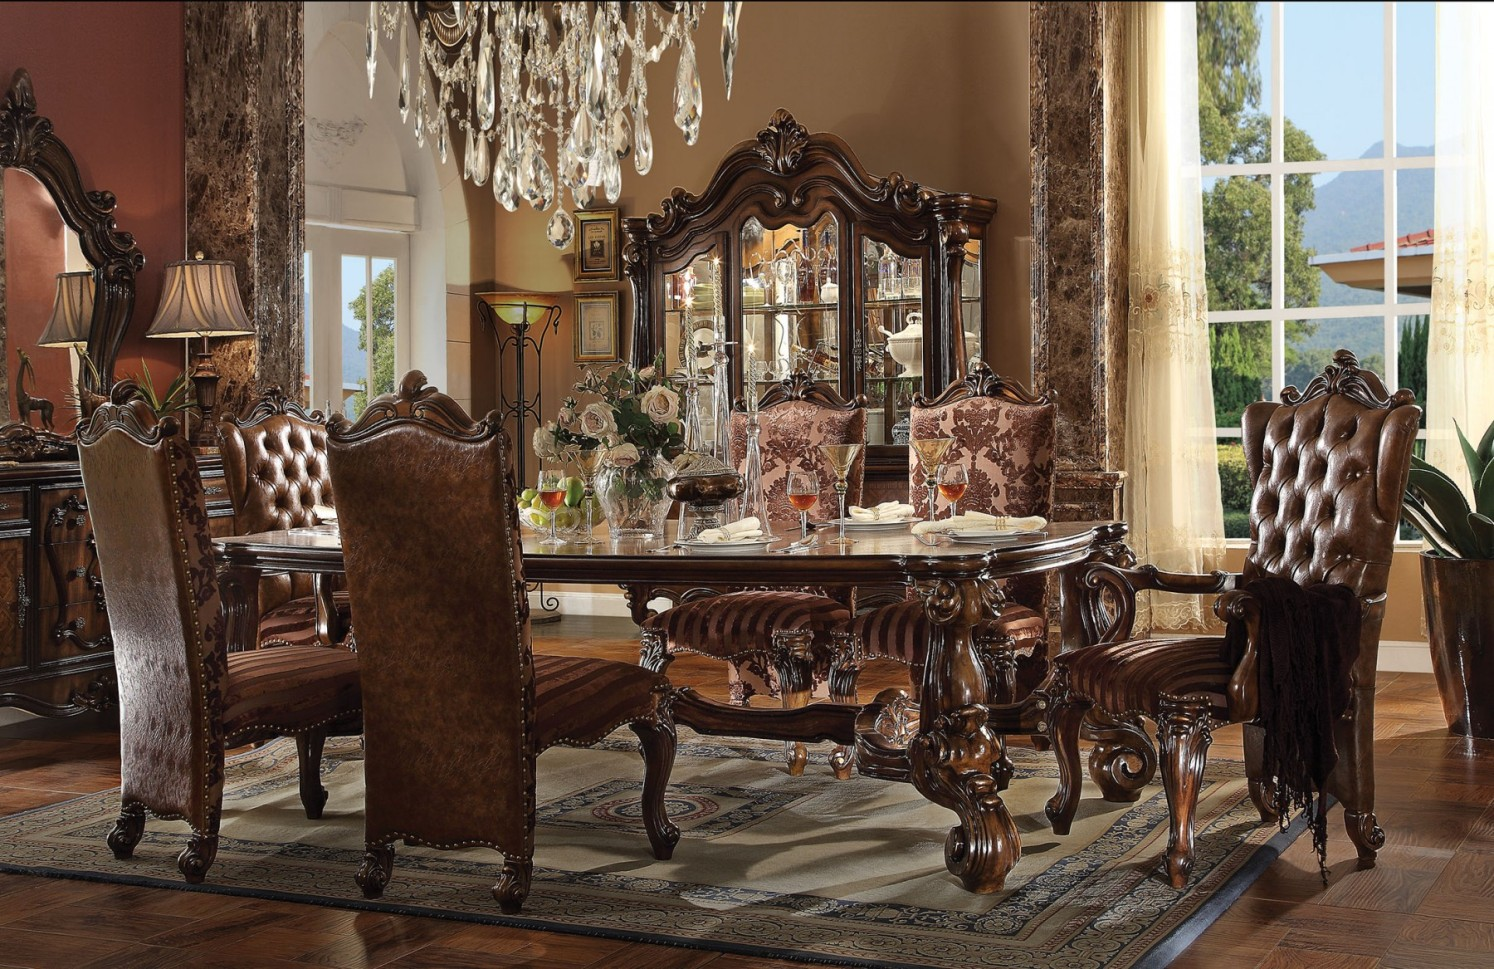 Formal dining room sets how elegance is made possible for Breakfast room sets